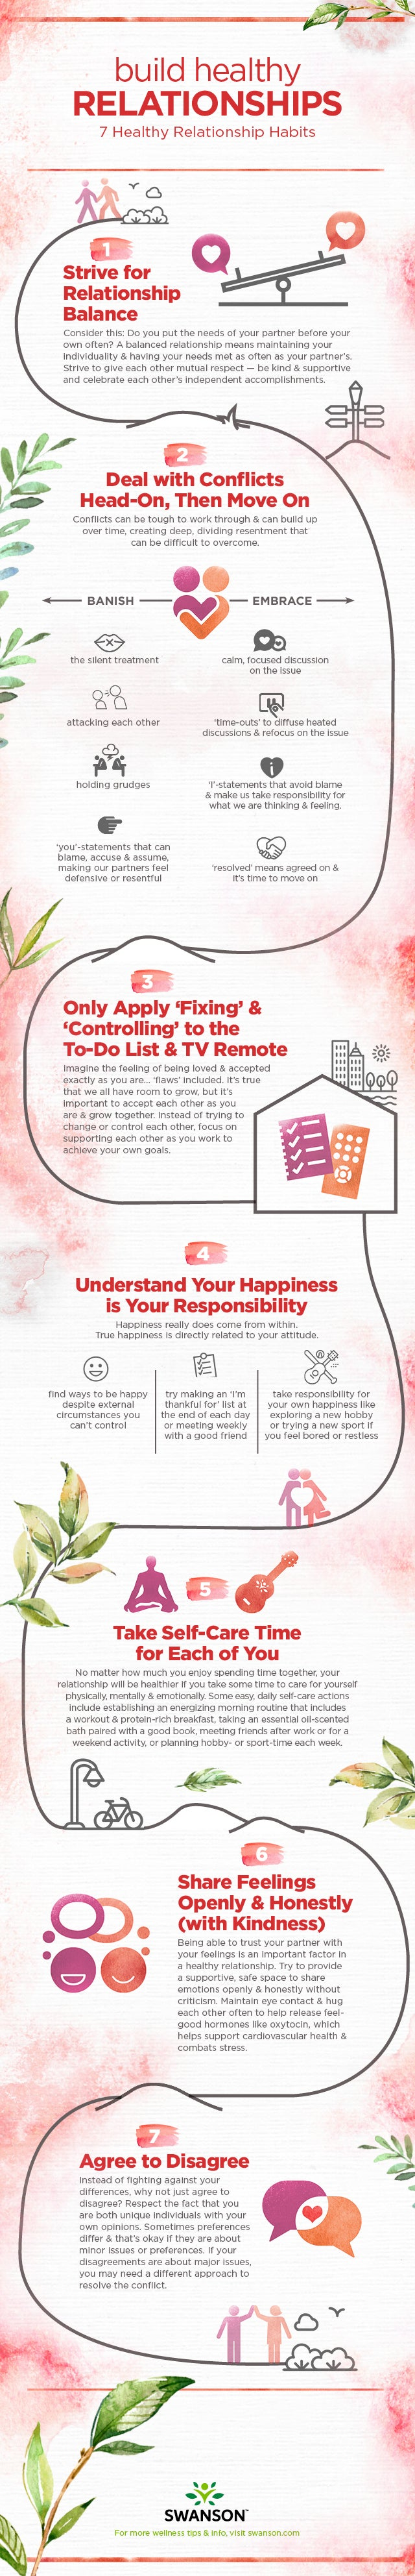 Build Healthy Relationships - infographic with tips on how to have healthy relationships